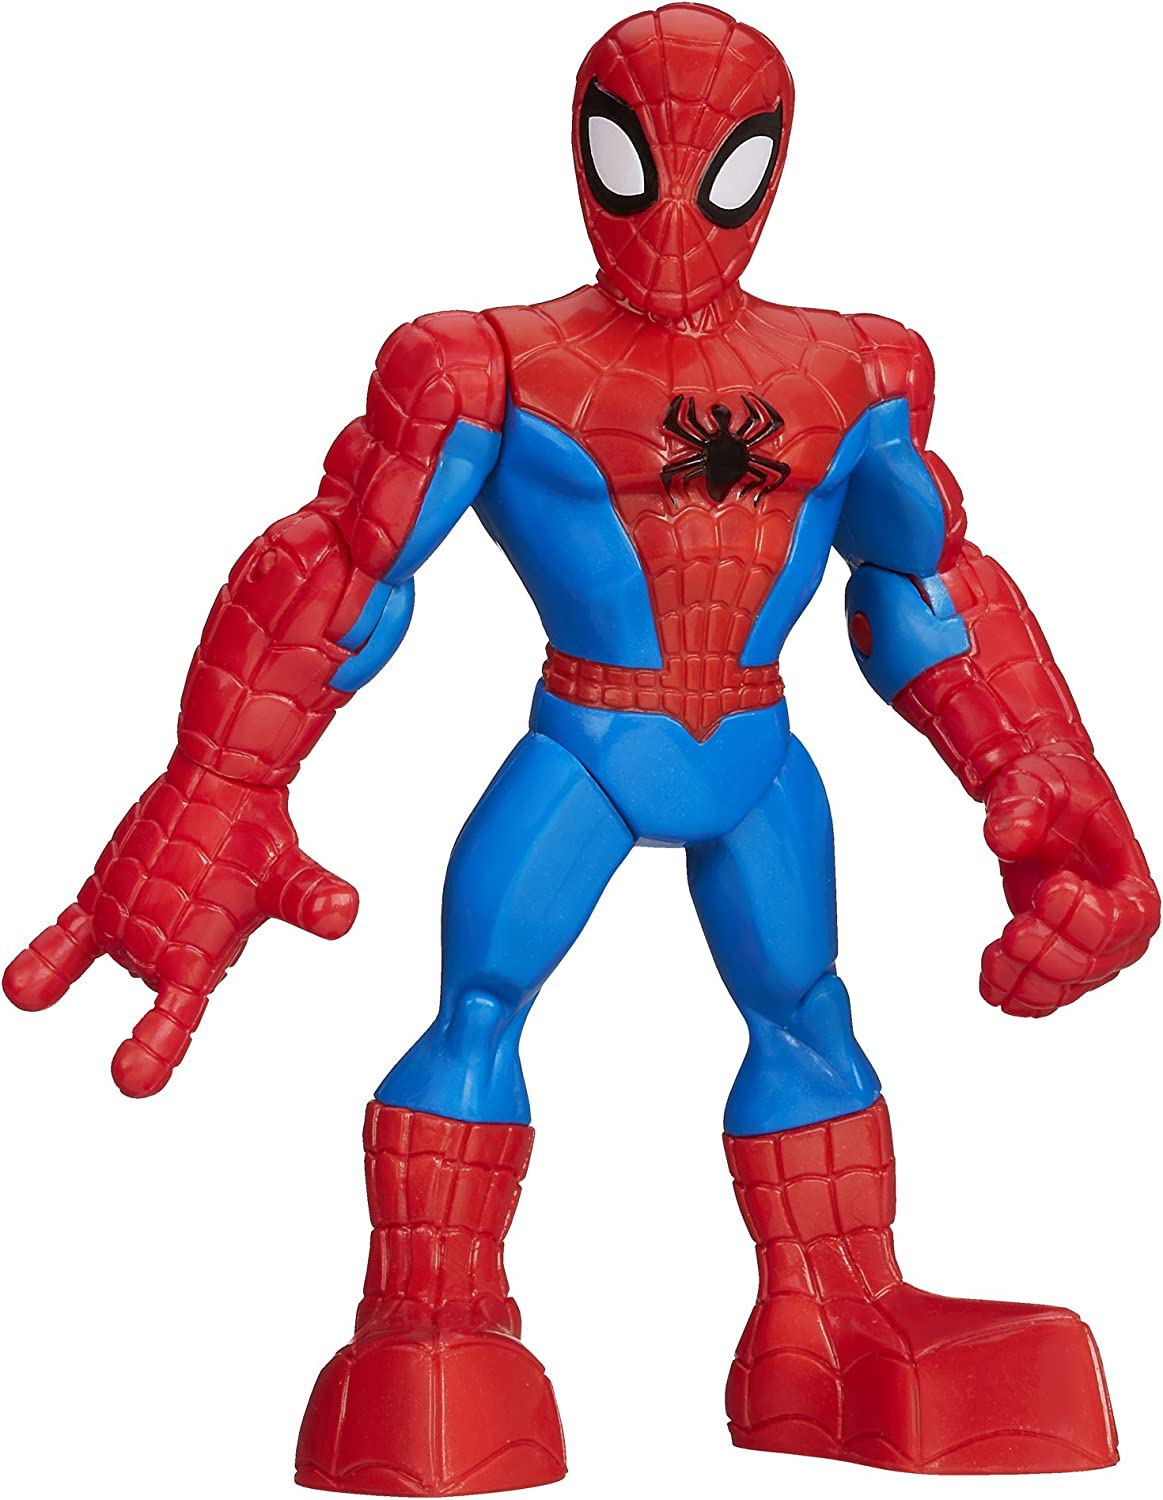 Marvel Spider-Man Adventures Spider-Man: Amazon.es: Juguetes y juegos